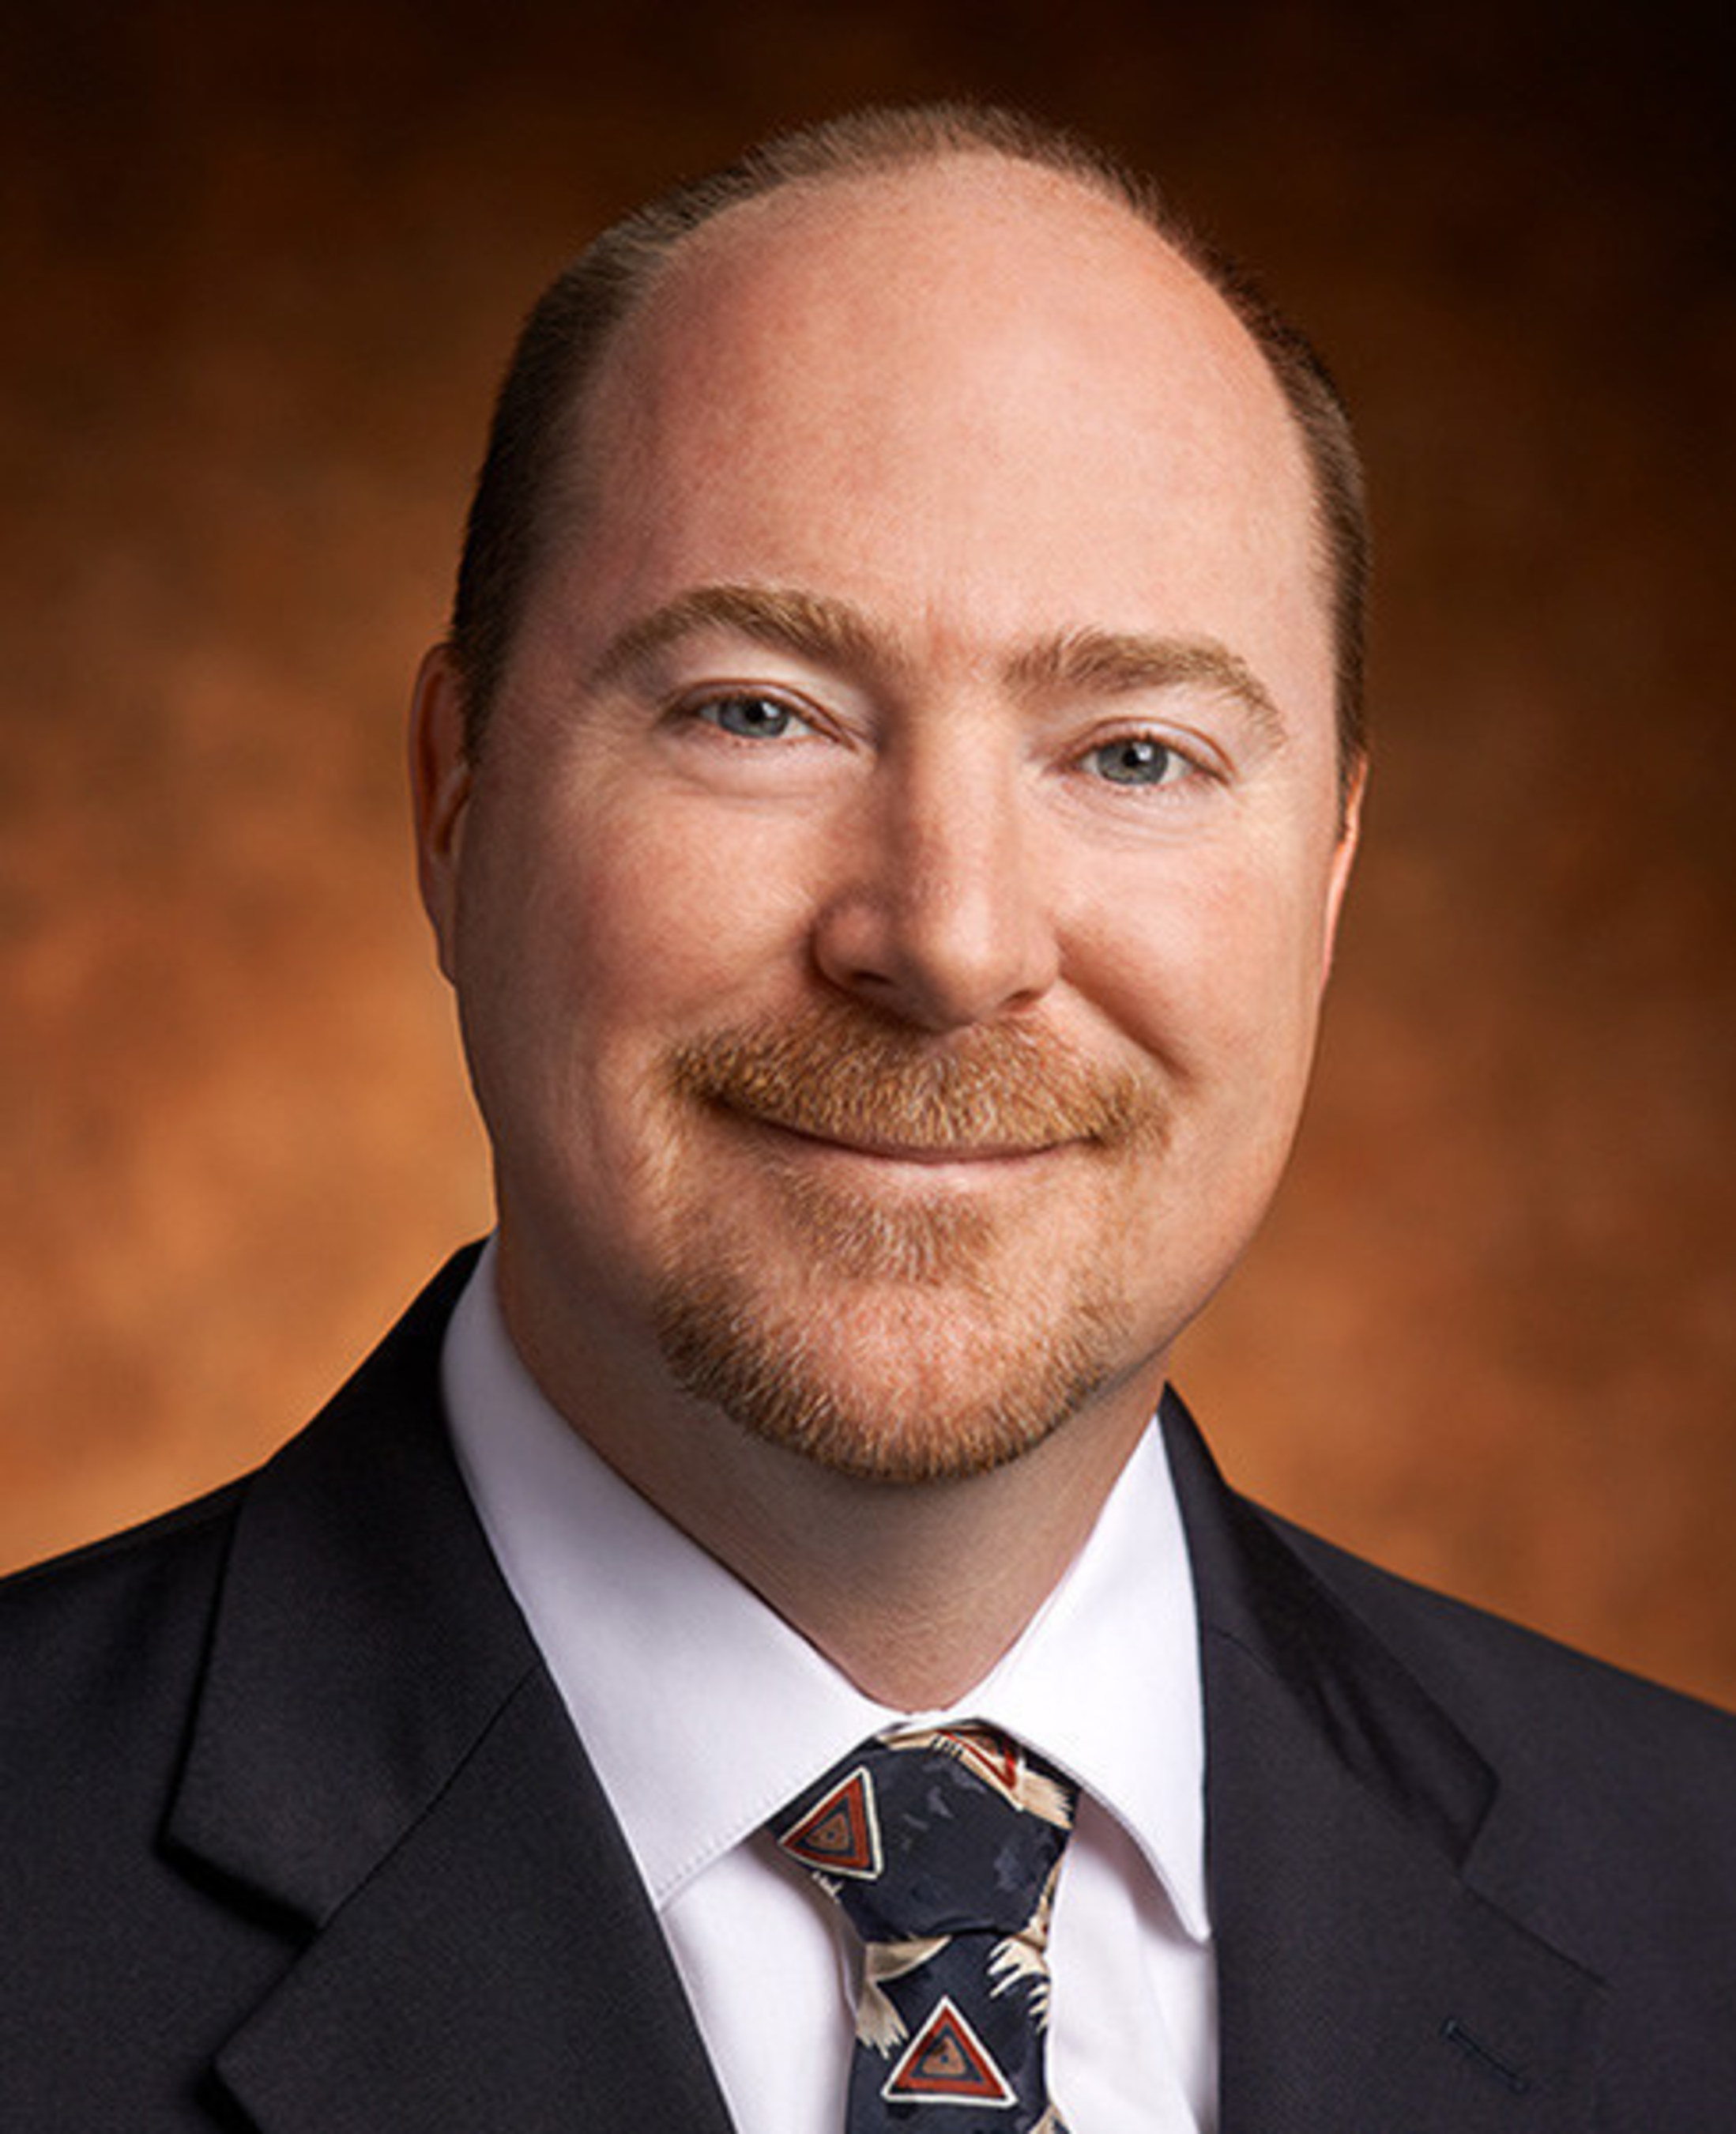 Eric S. Petersen, Vice President, Research and Innovation, AK Steel